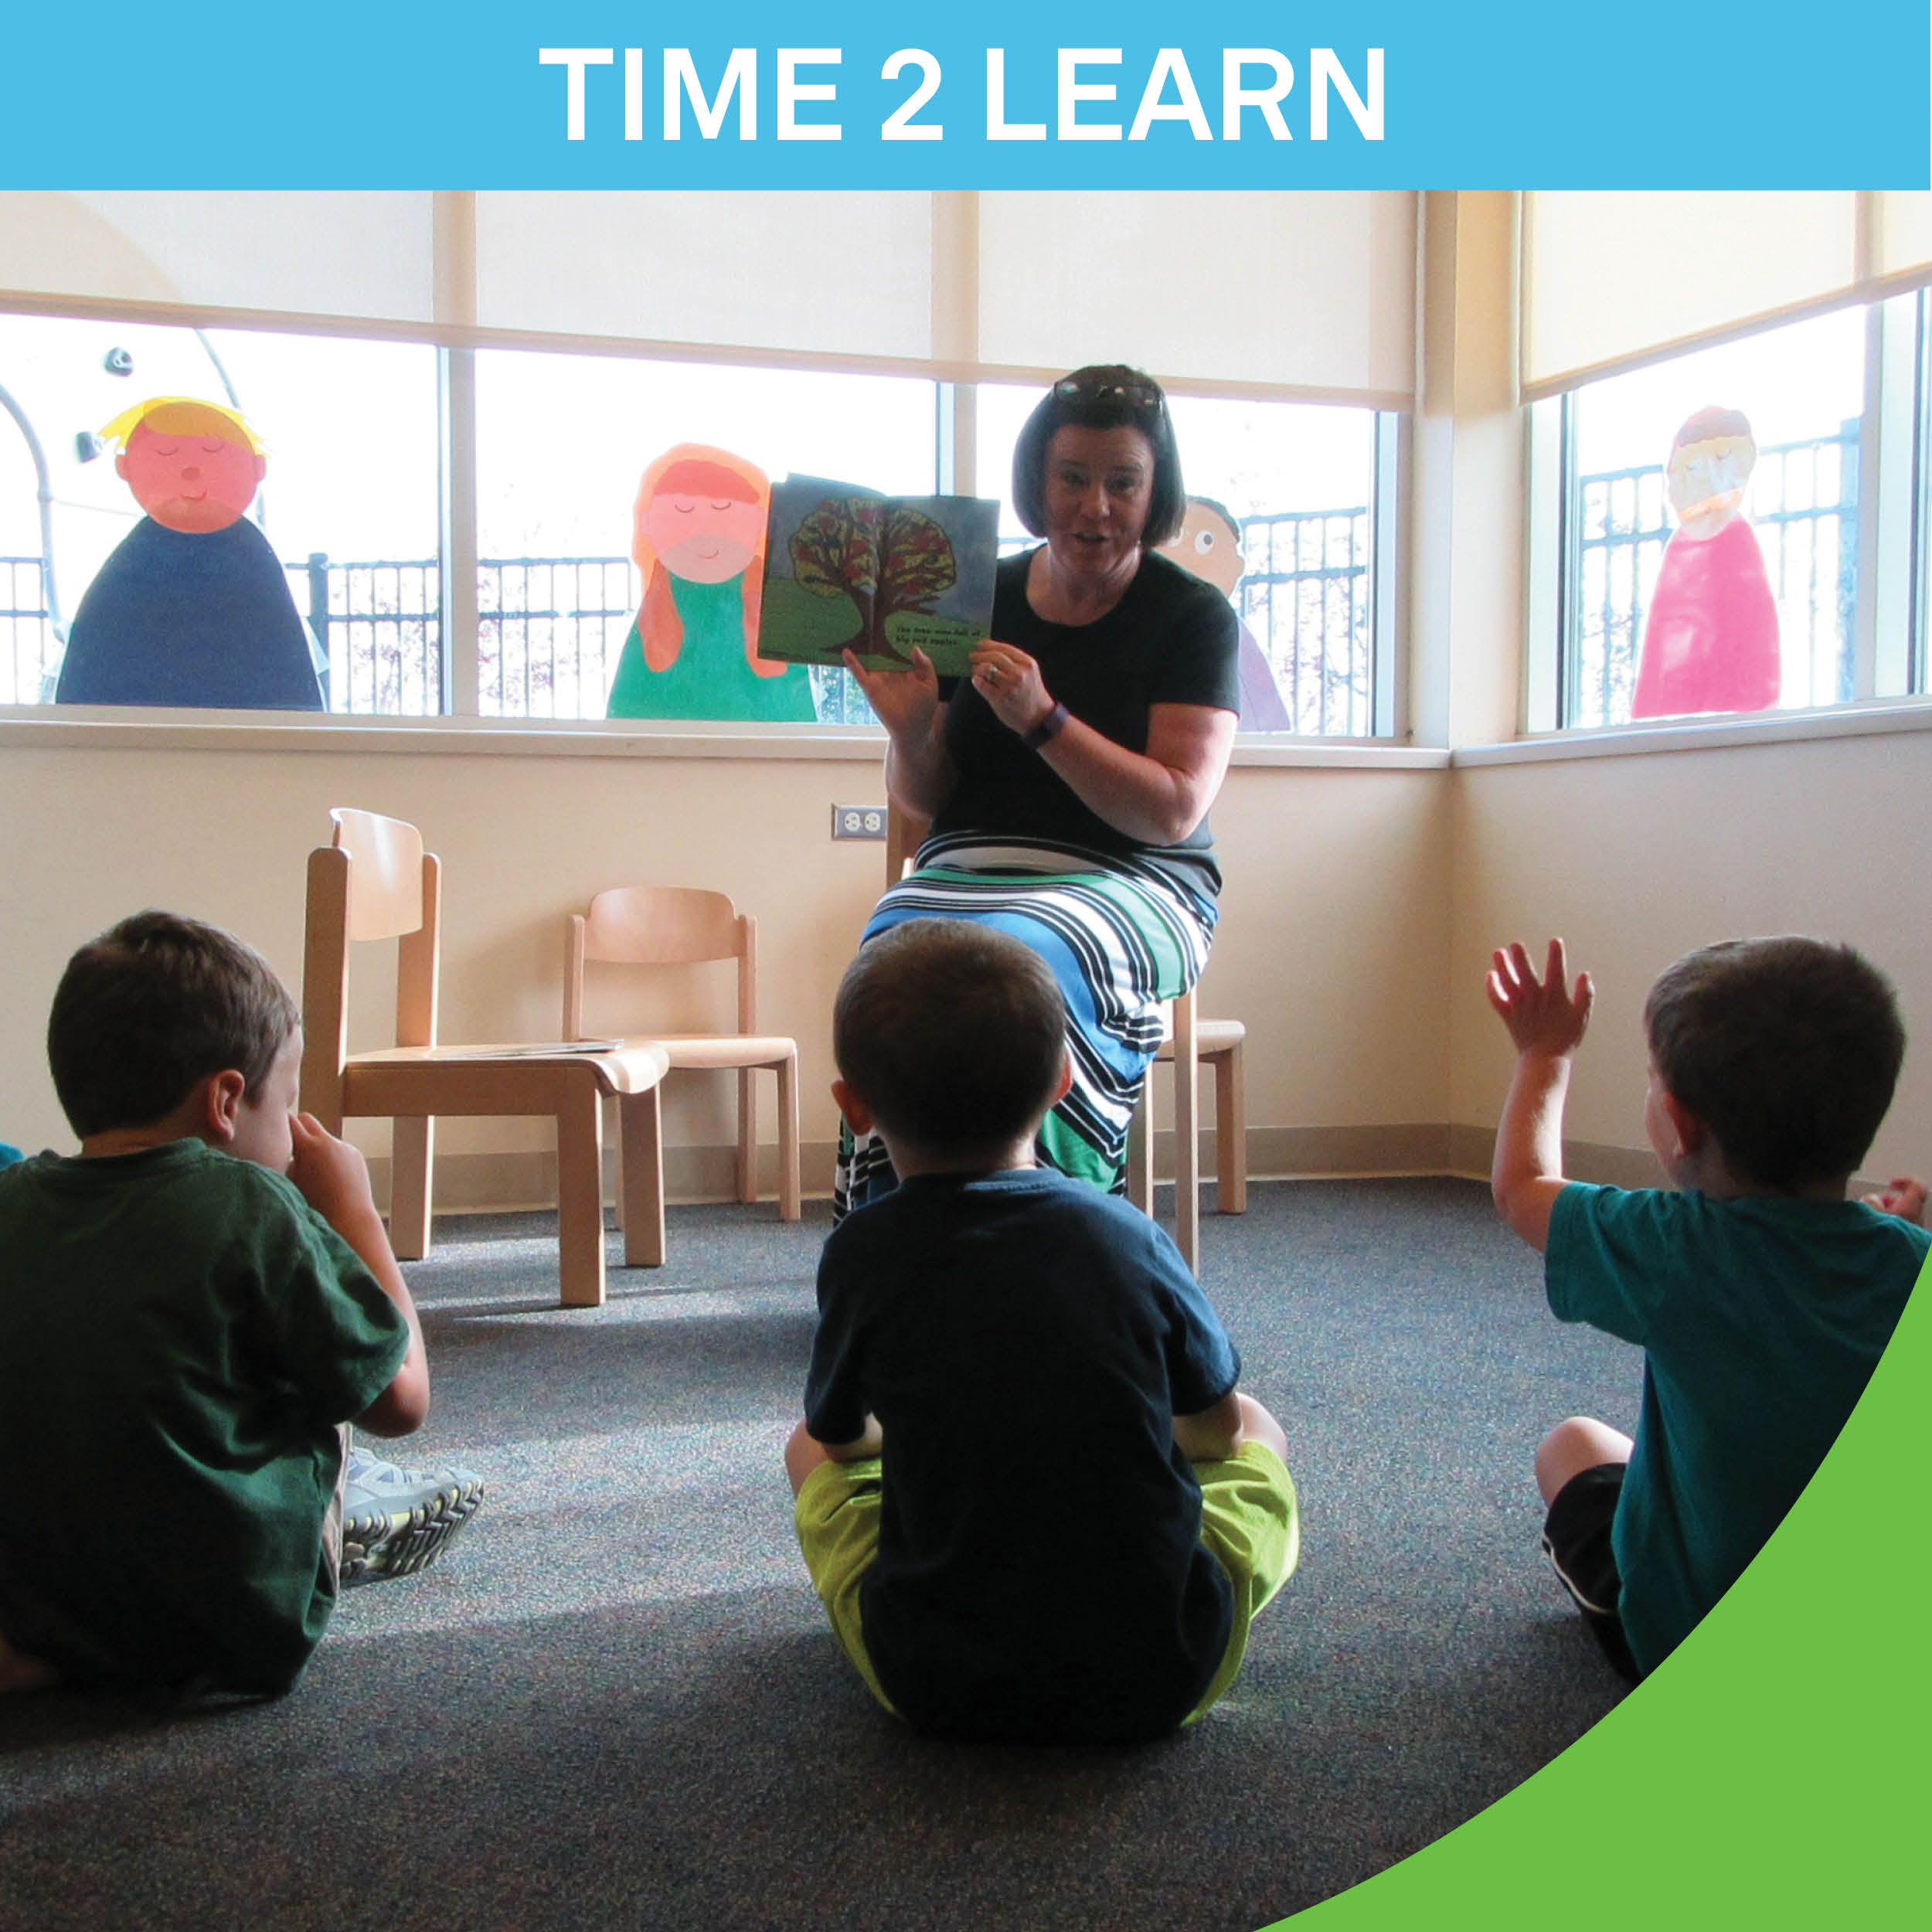 time 2 learn, for ages 2 - 3